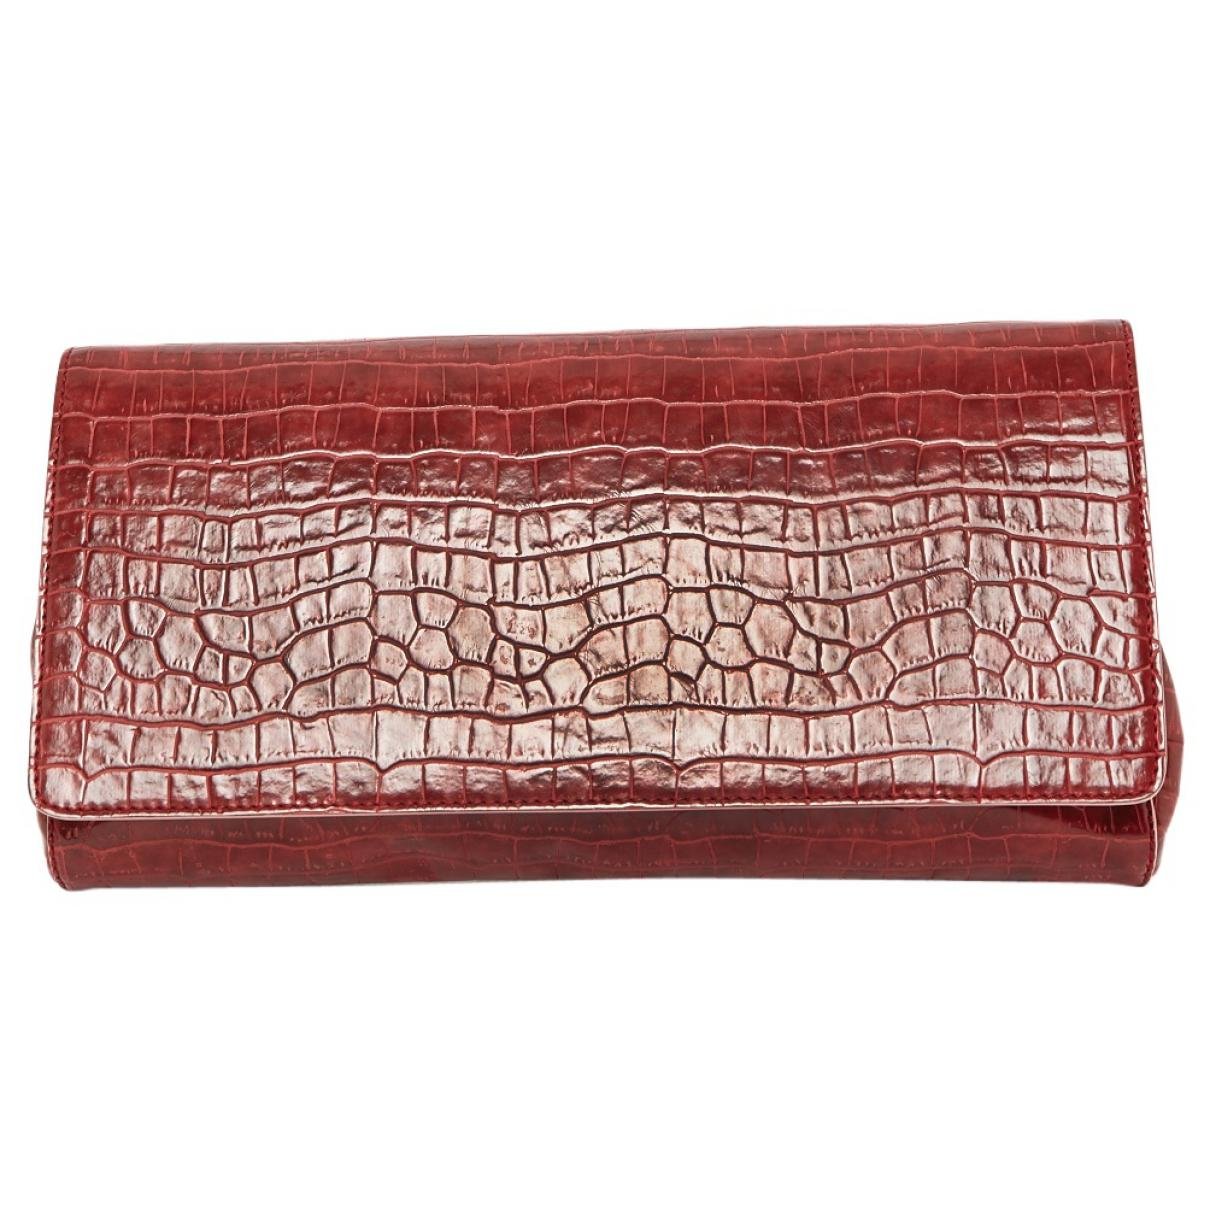 54185fbfe0f1 Stella McCartney. Women s Red Burgundy Leather Clutch Bag.  395 From Vestiaire  Collective ...